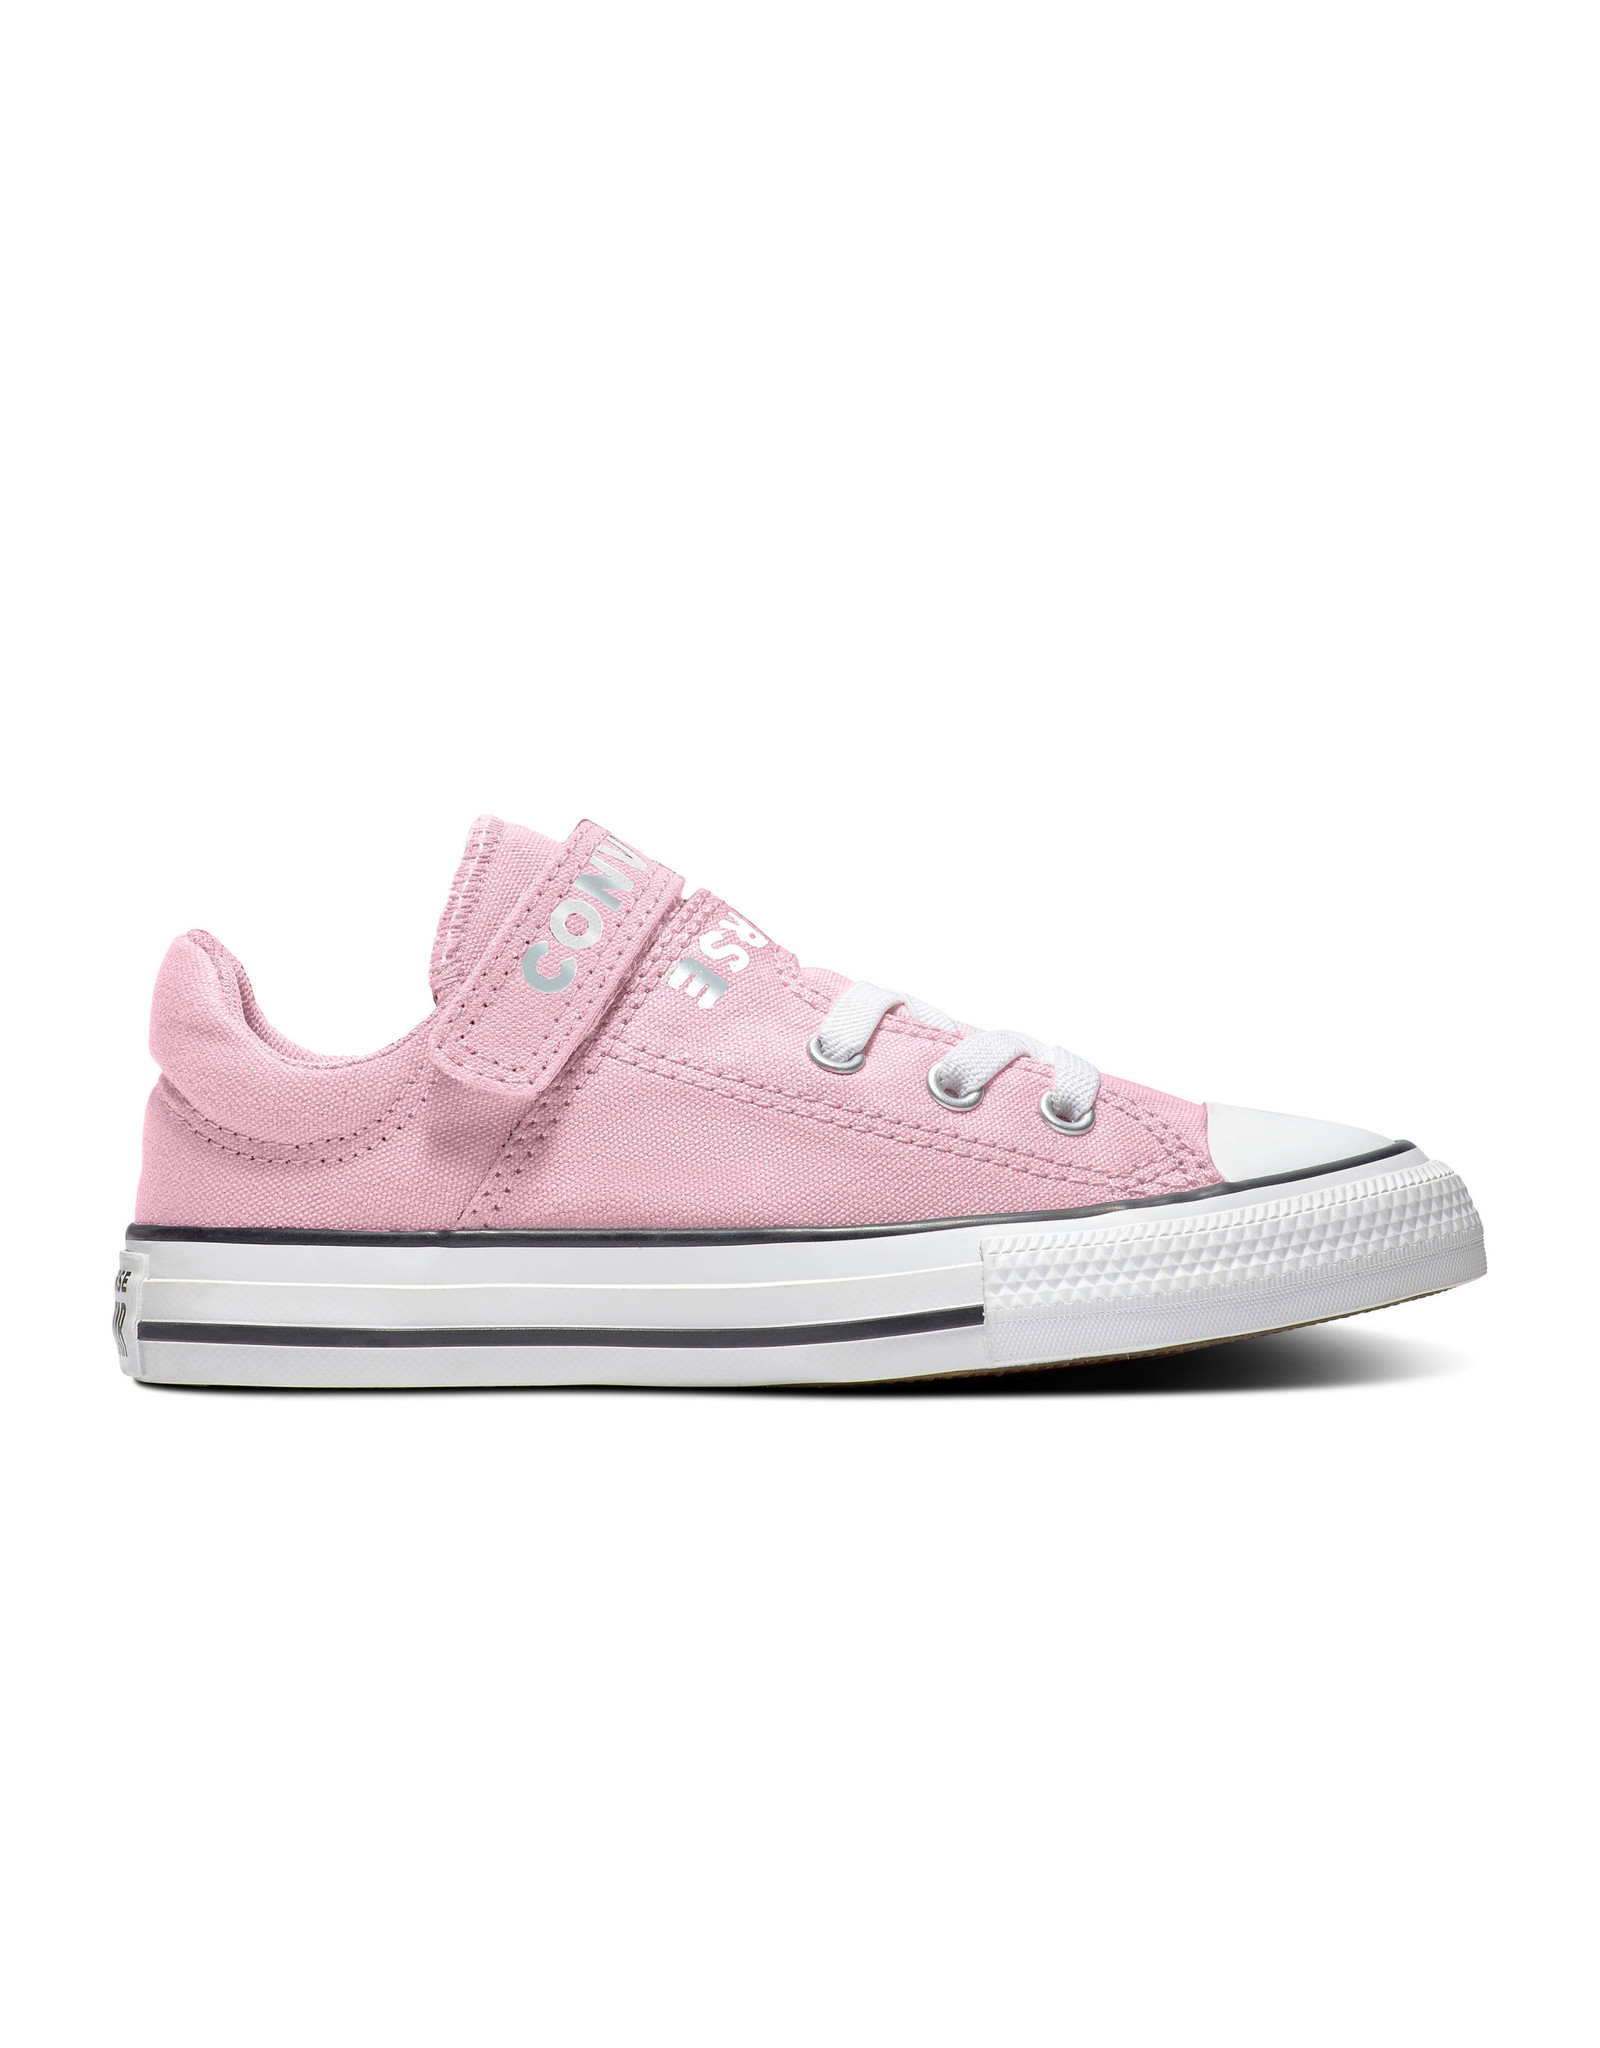 CONVERSE CHUCK TAYLOR ALL STAR  DOUBLE STRAP OX CHERRY BLOSSOM CAVOP-666929C